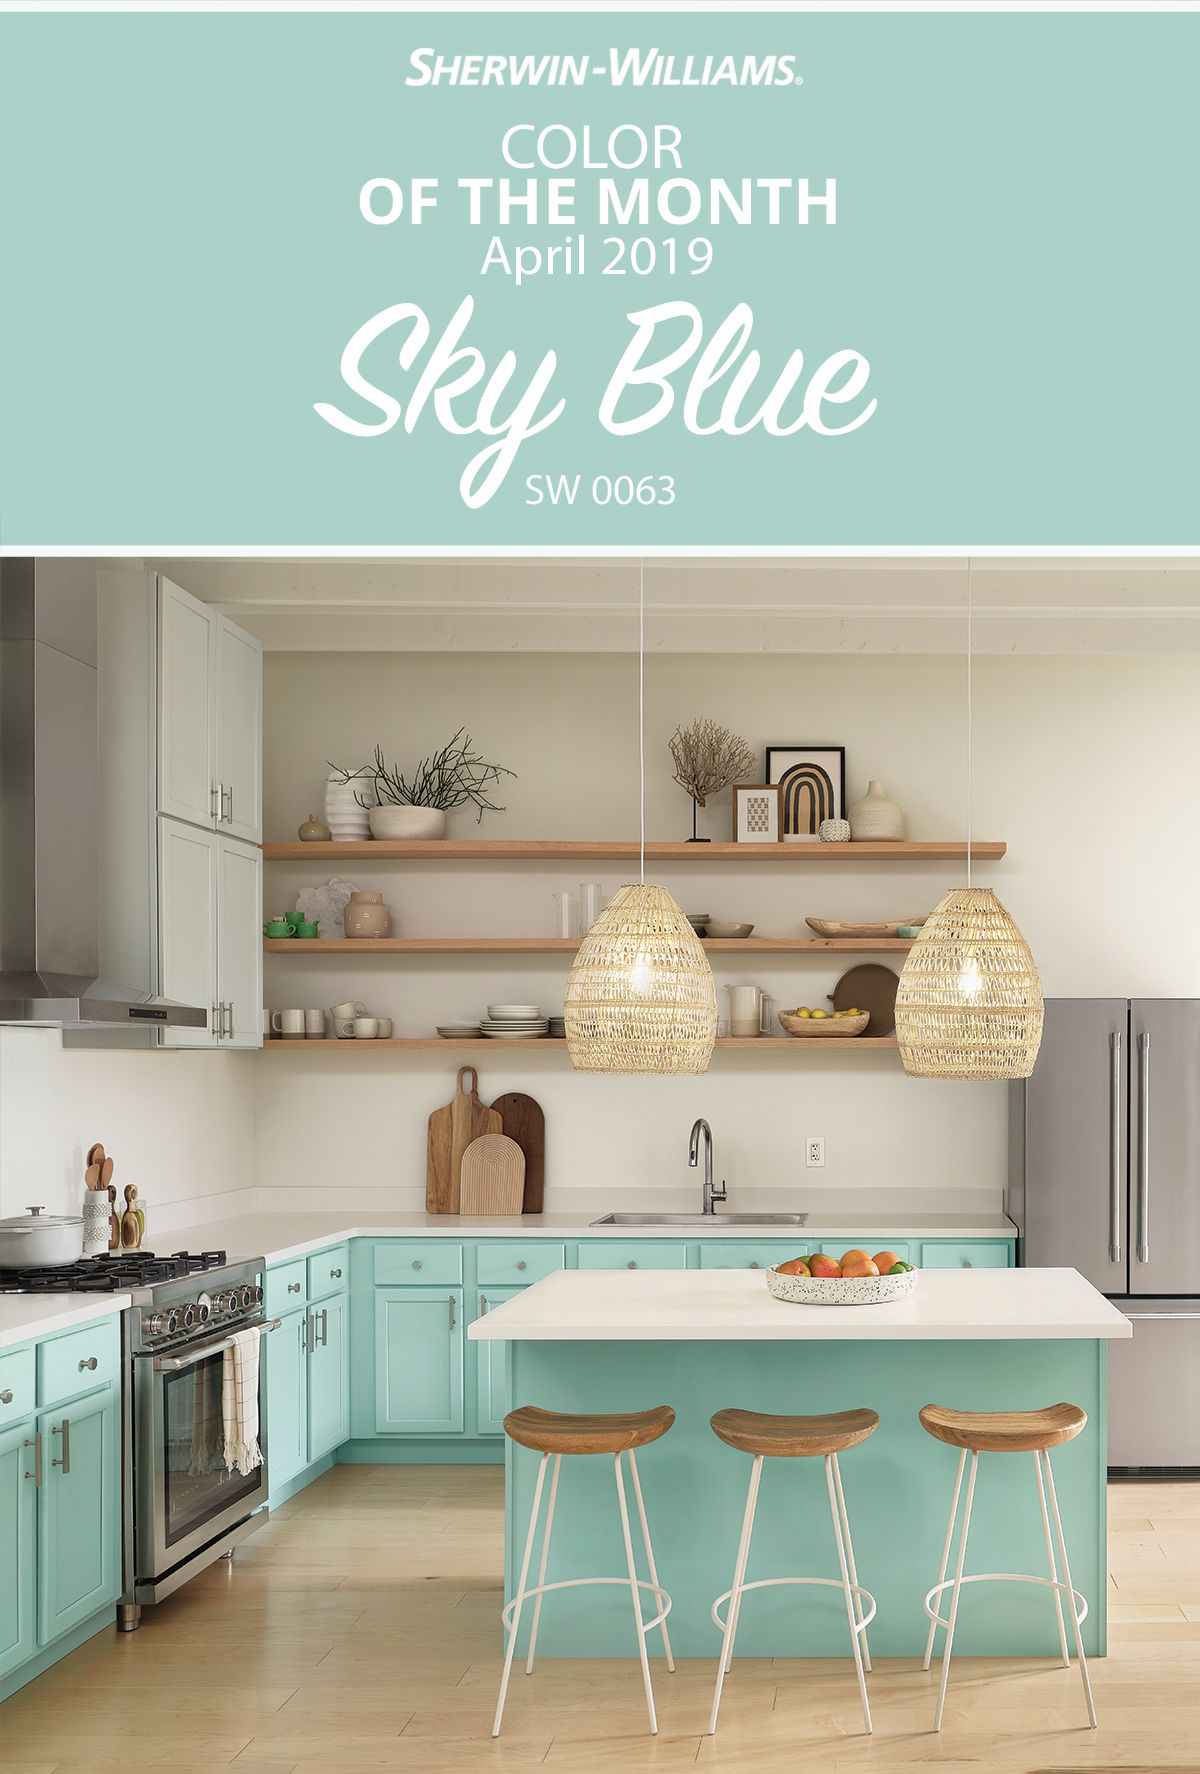 Dreaming Of Painting Your Kitchen Cabinets Make It A Reality With Our April Color Of The Month S Blue Kitchen Decor Kitchen Decor Kitchen Cabinet Inspiration